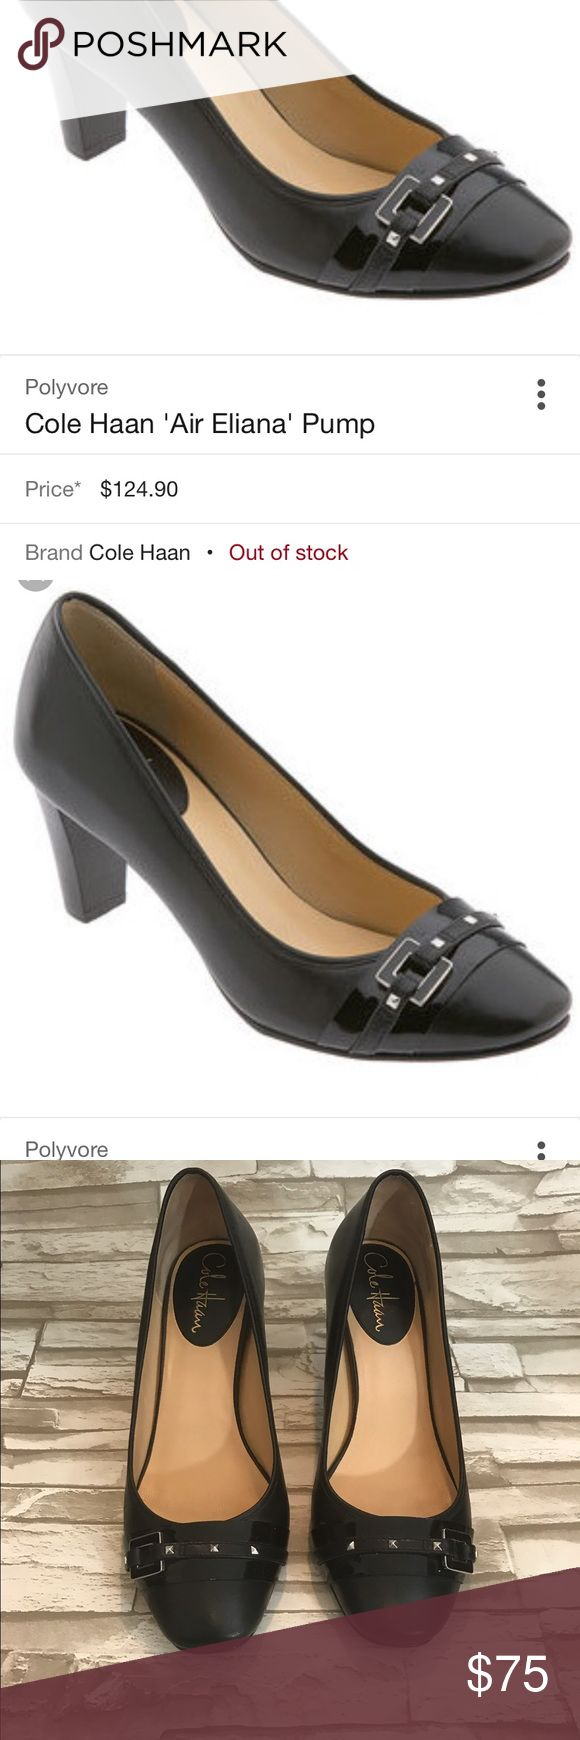 cole haan air eliana pump 8 Black Leather Studs cole haan air eliana pump Womens Size 8 Black Leather Studs Heels Shoes Sold Out In excellent condition.  Completely sold out and hard to find Cole Haan Shoes Heels